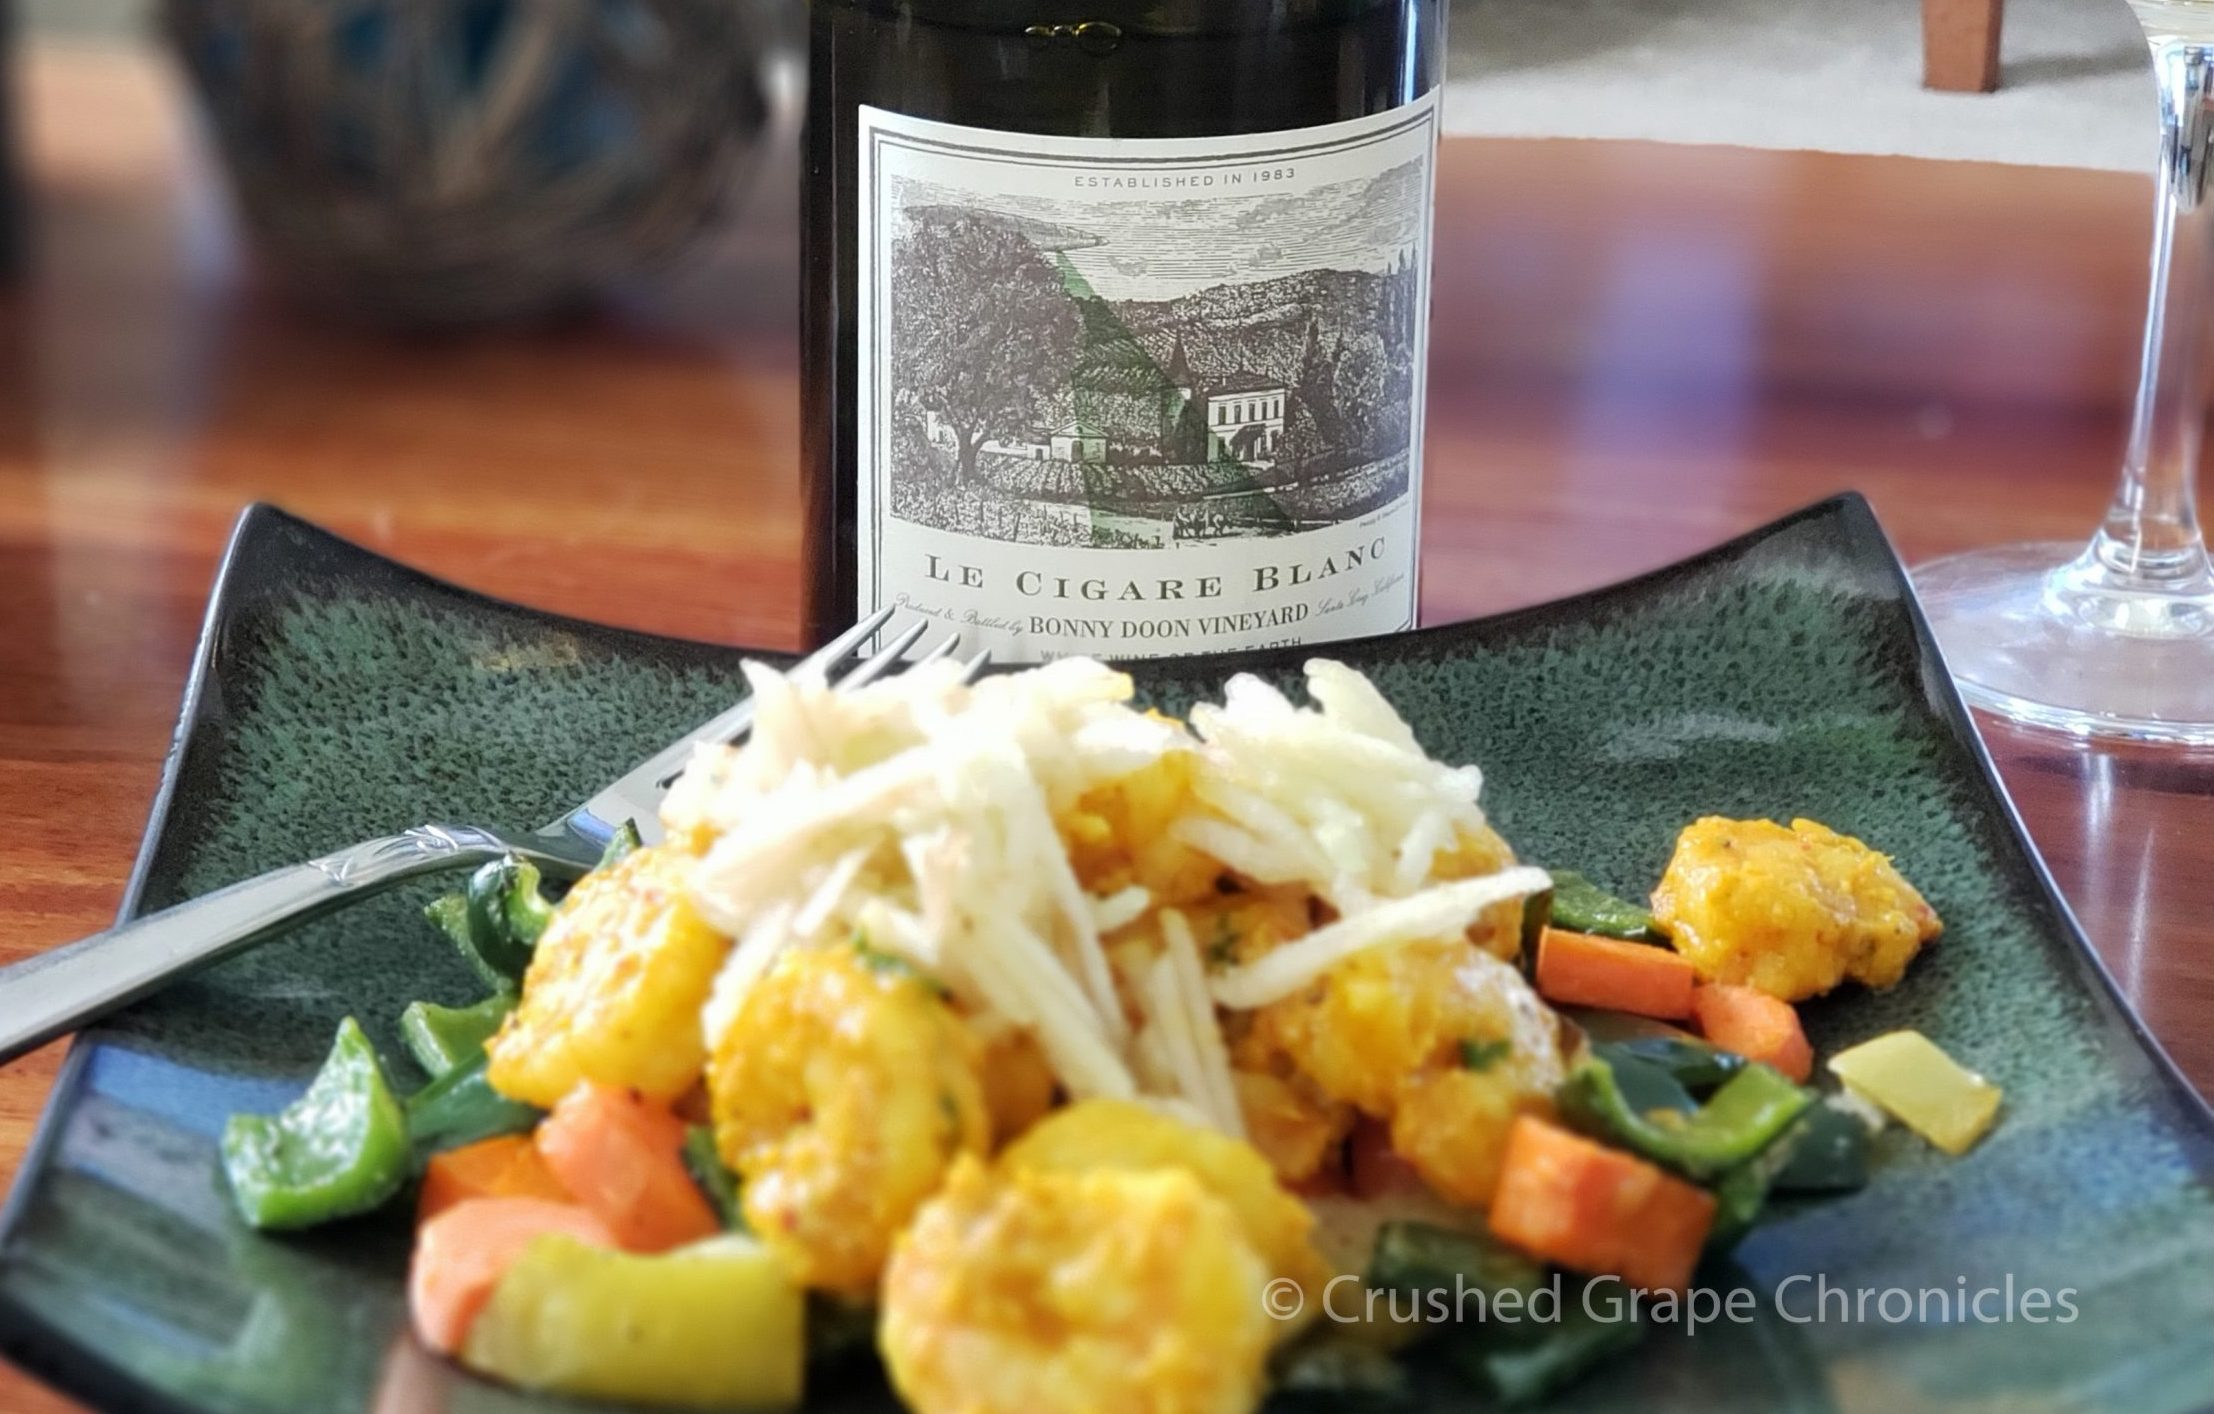 Le Cigare Blanc & Turmeric-mojo shrimp with roasted carrots and poblano